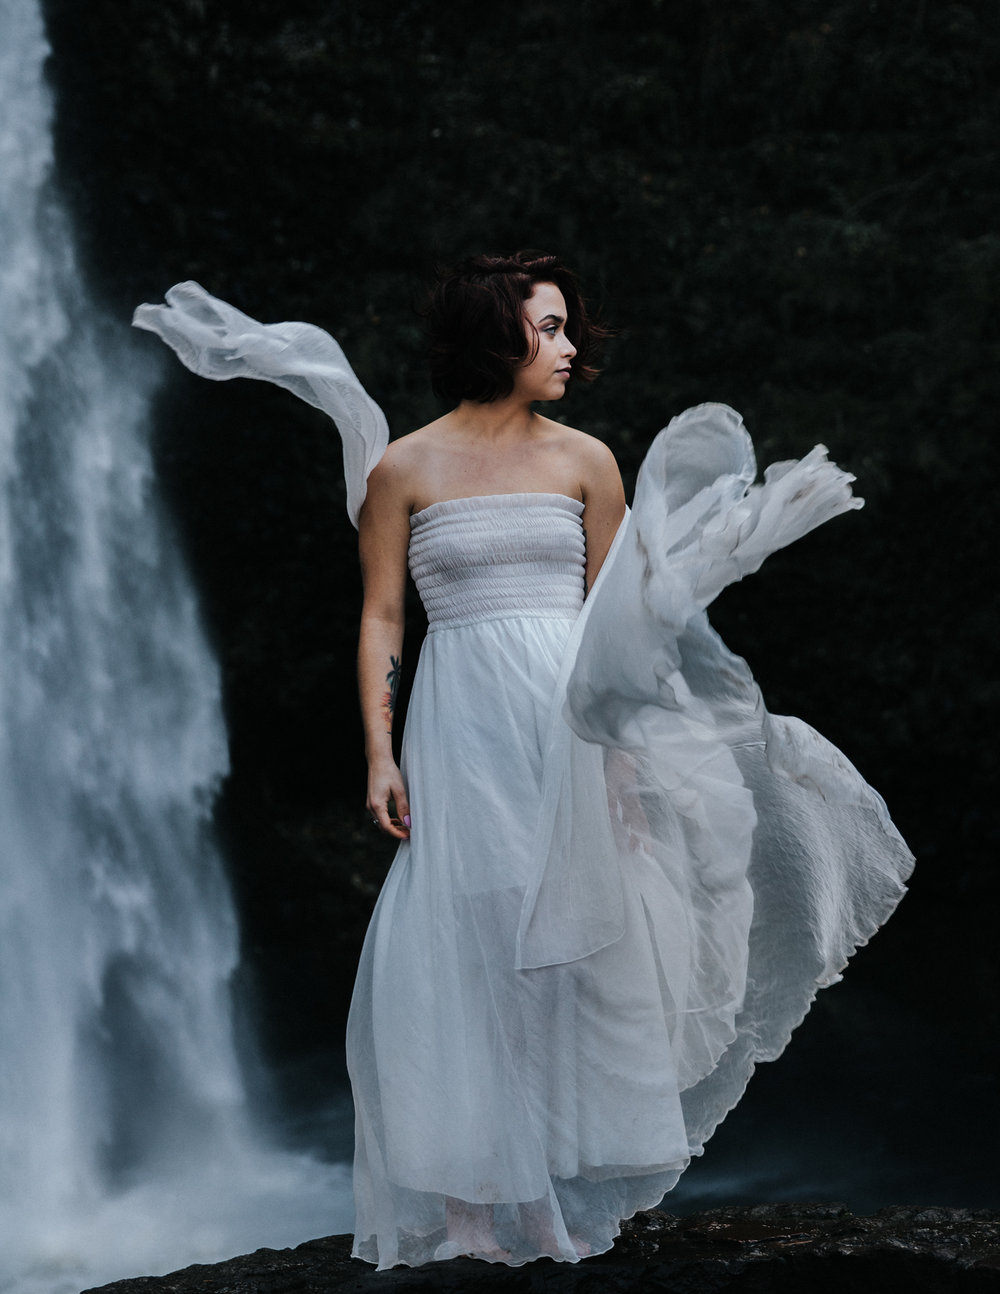 Woman in flowy white dress by waterfall, Adventurous Outdoor + Waterfall Couples Session | Croative Photography